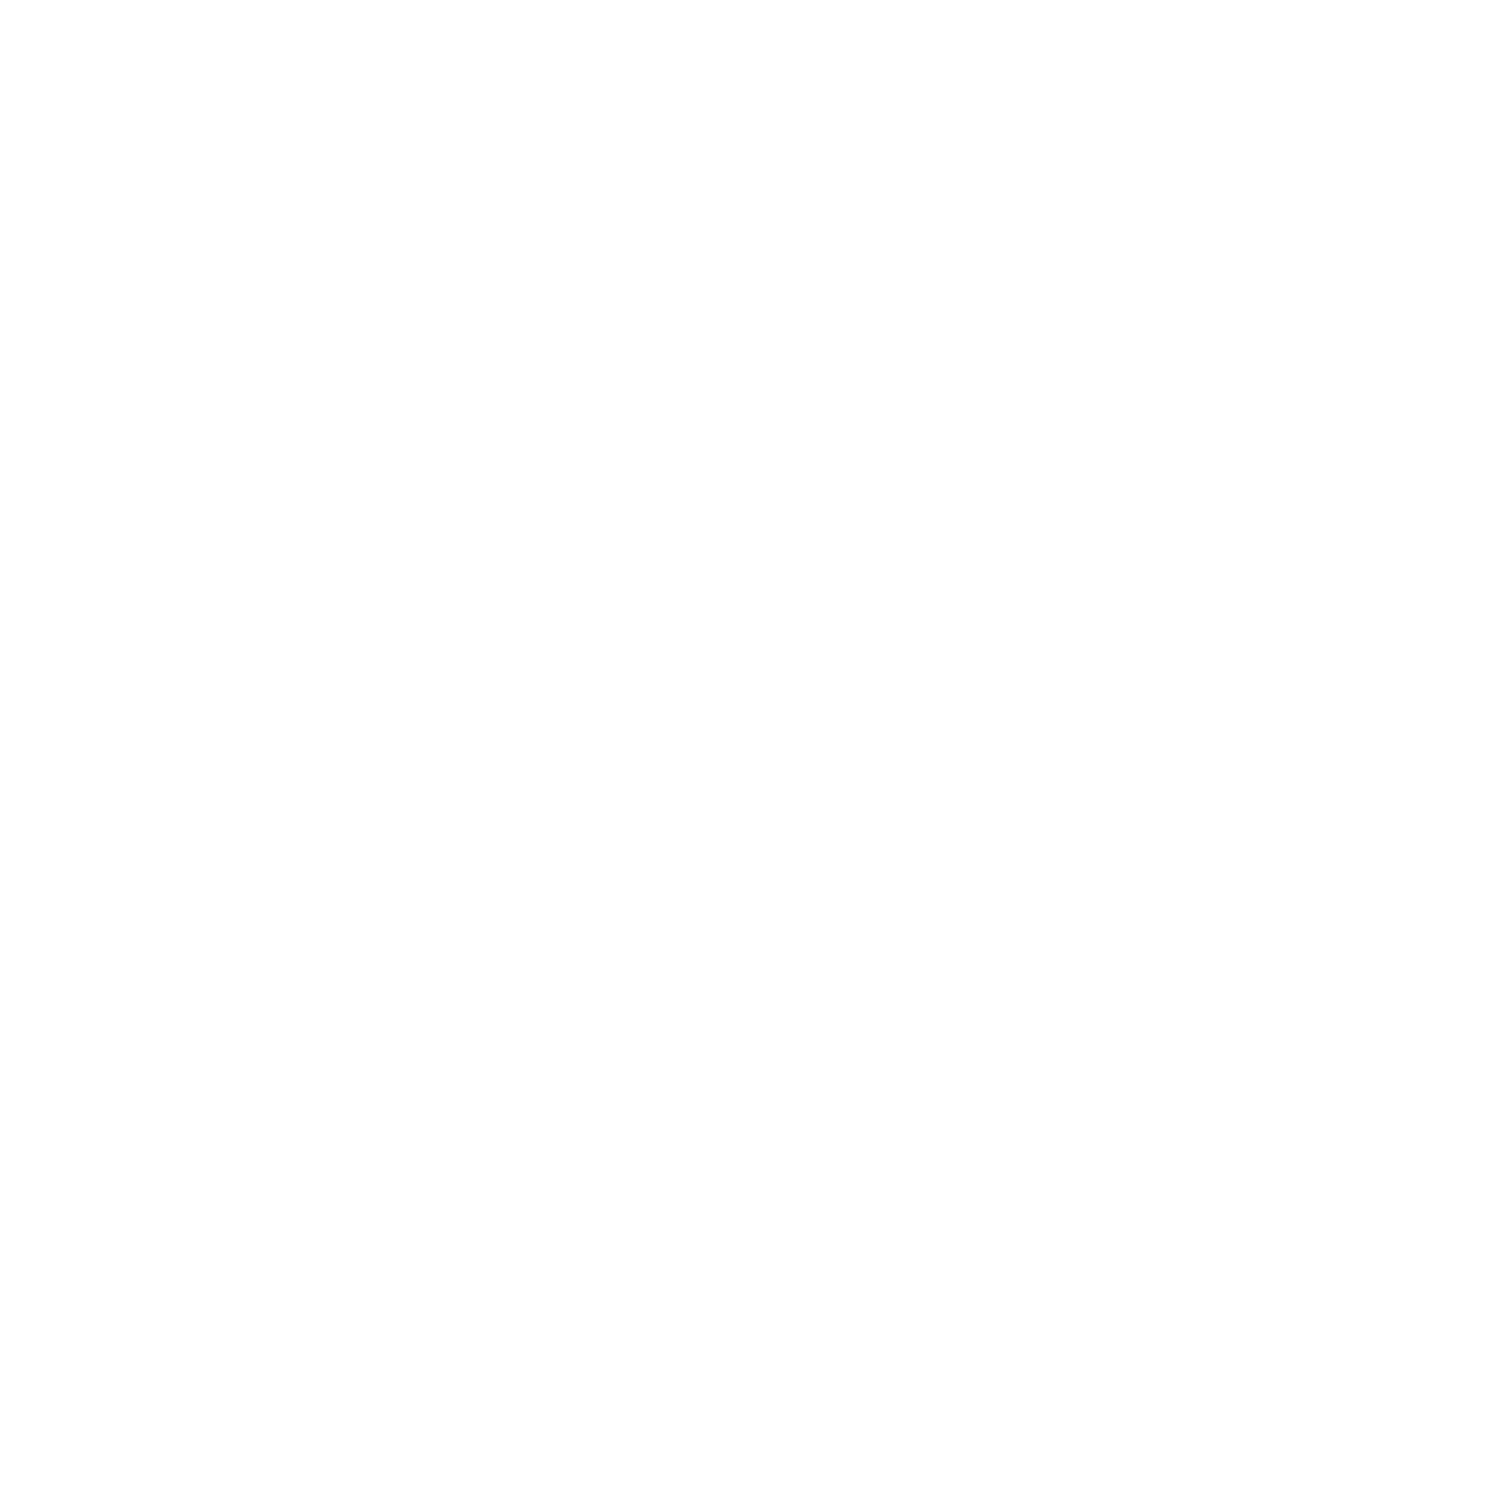 HAWAII GLASS BOTTOM BOAT